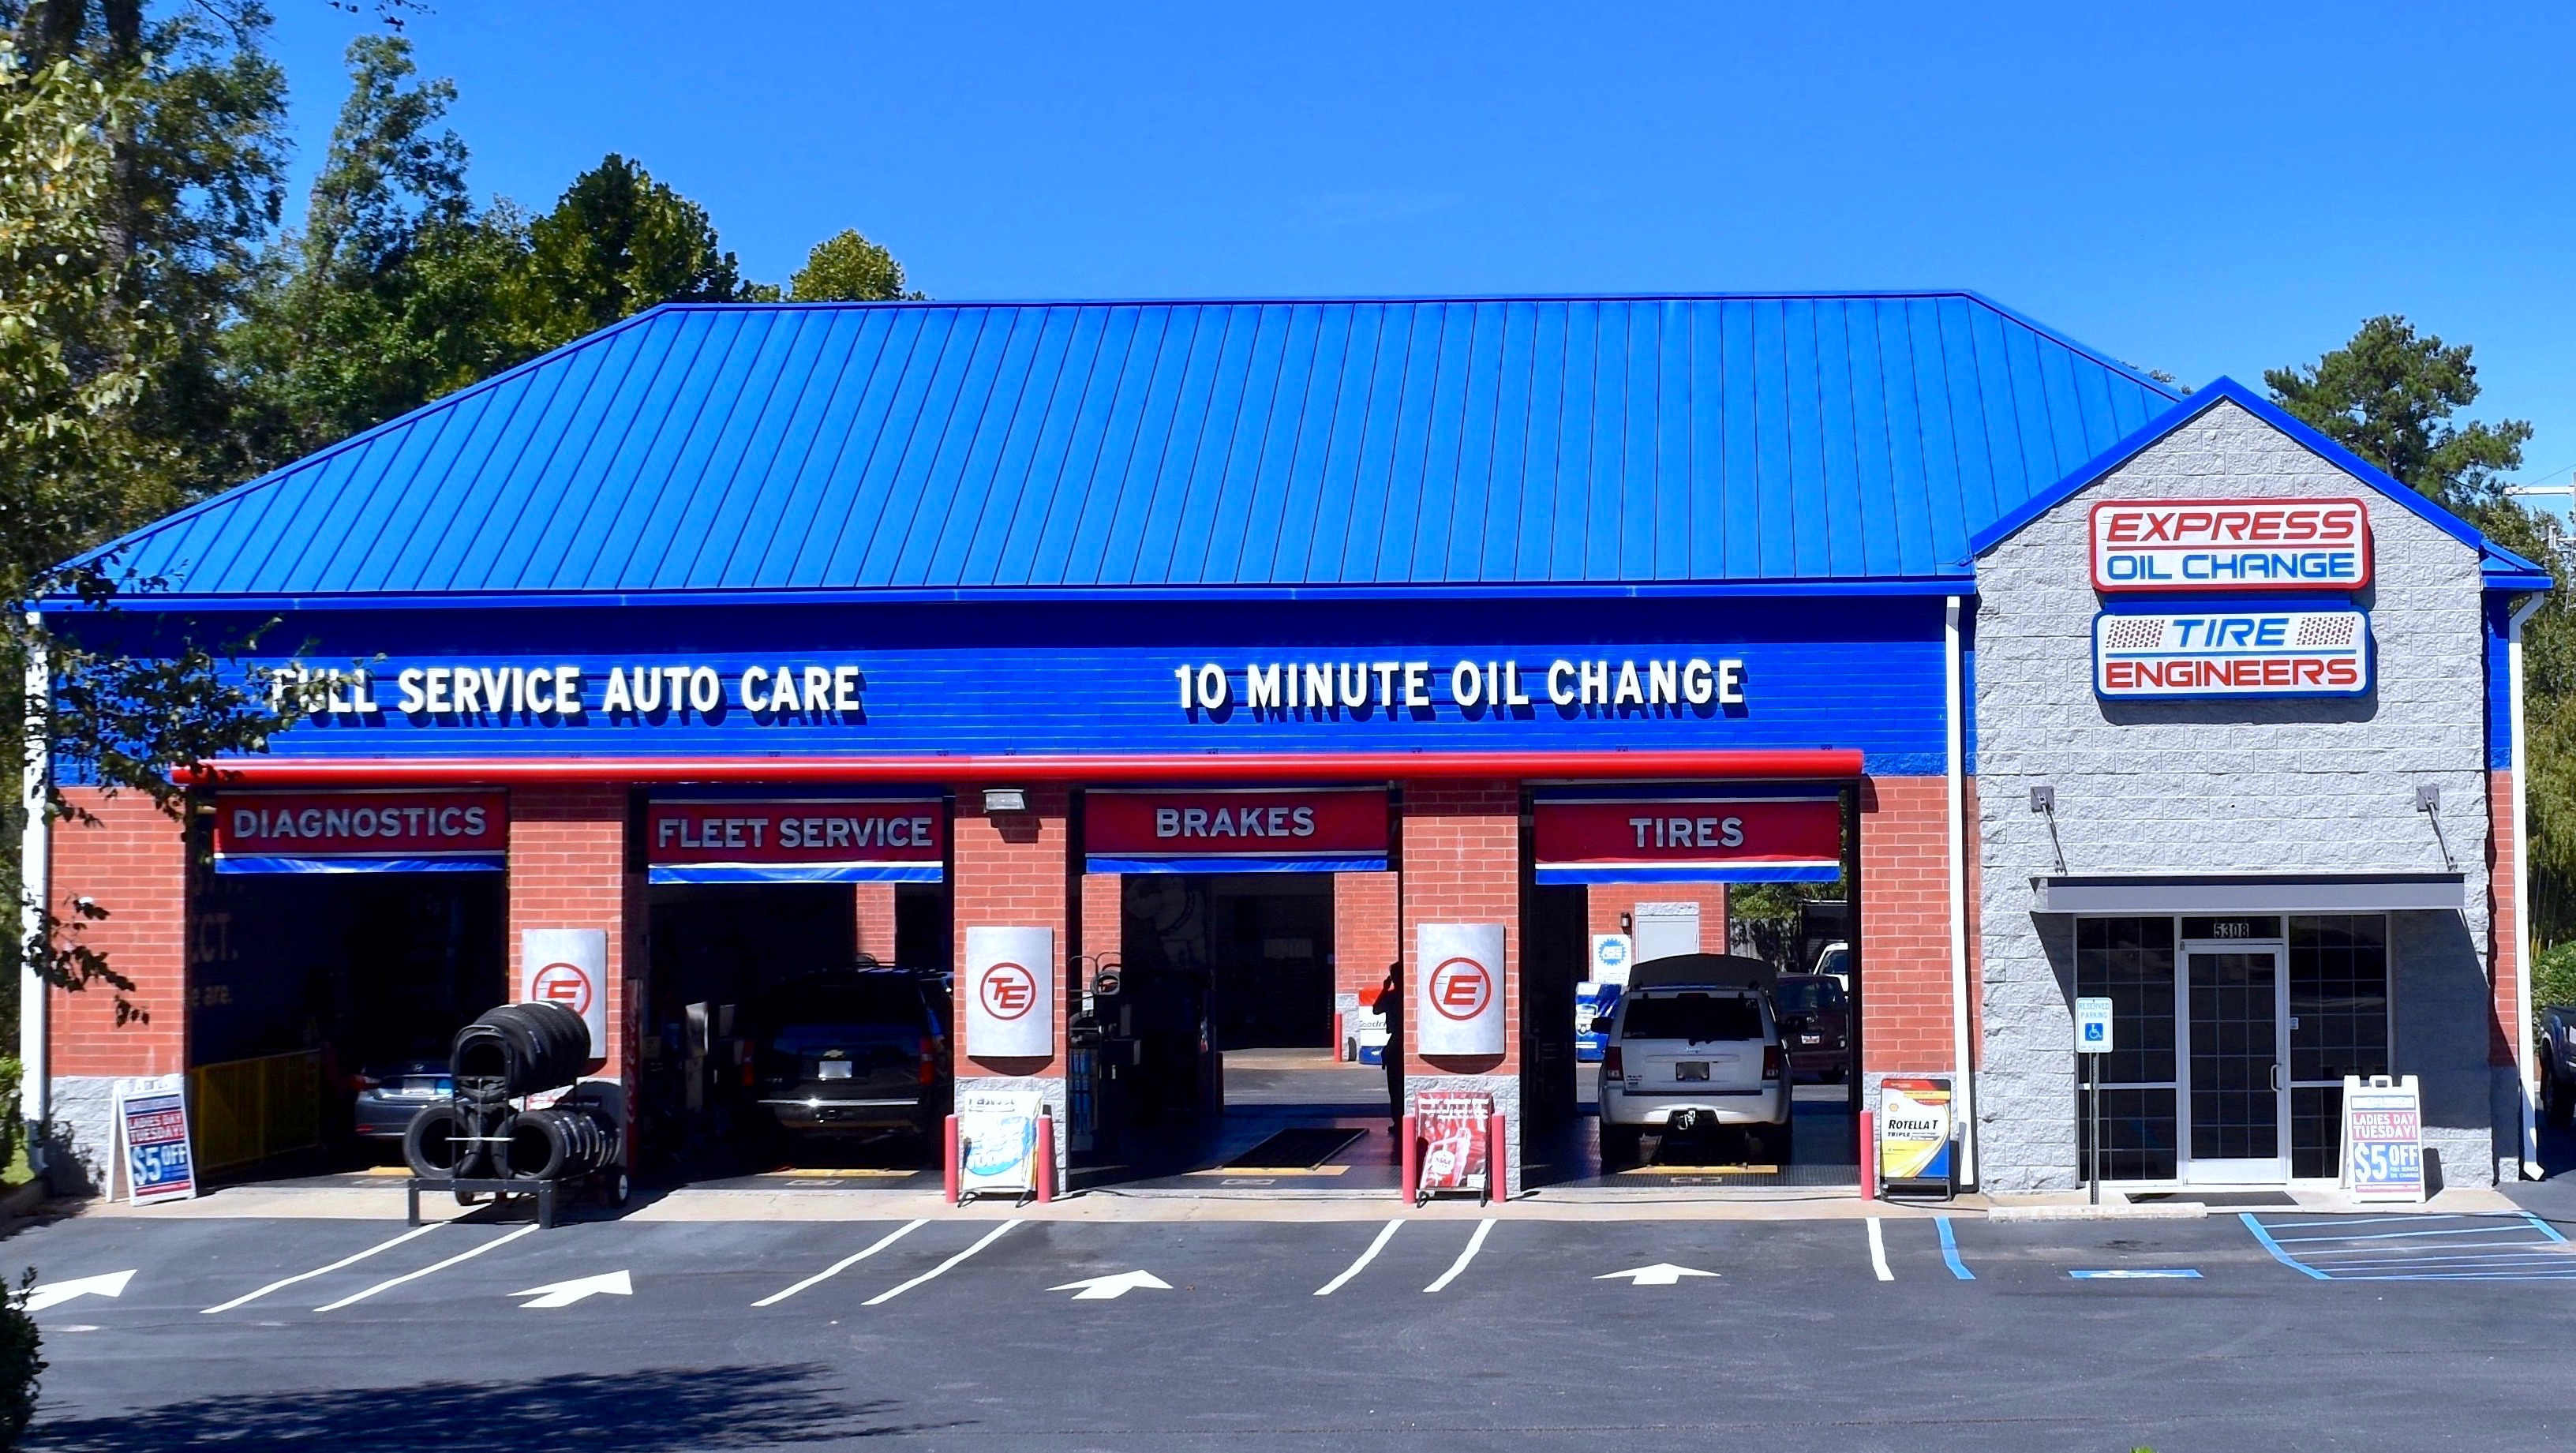 Express Oil Change & Tire Engineers Lexington, SC - Sunset Boulevard store